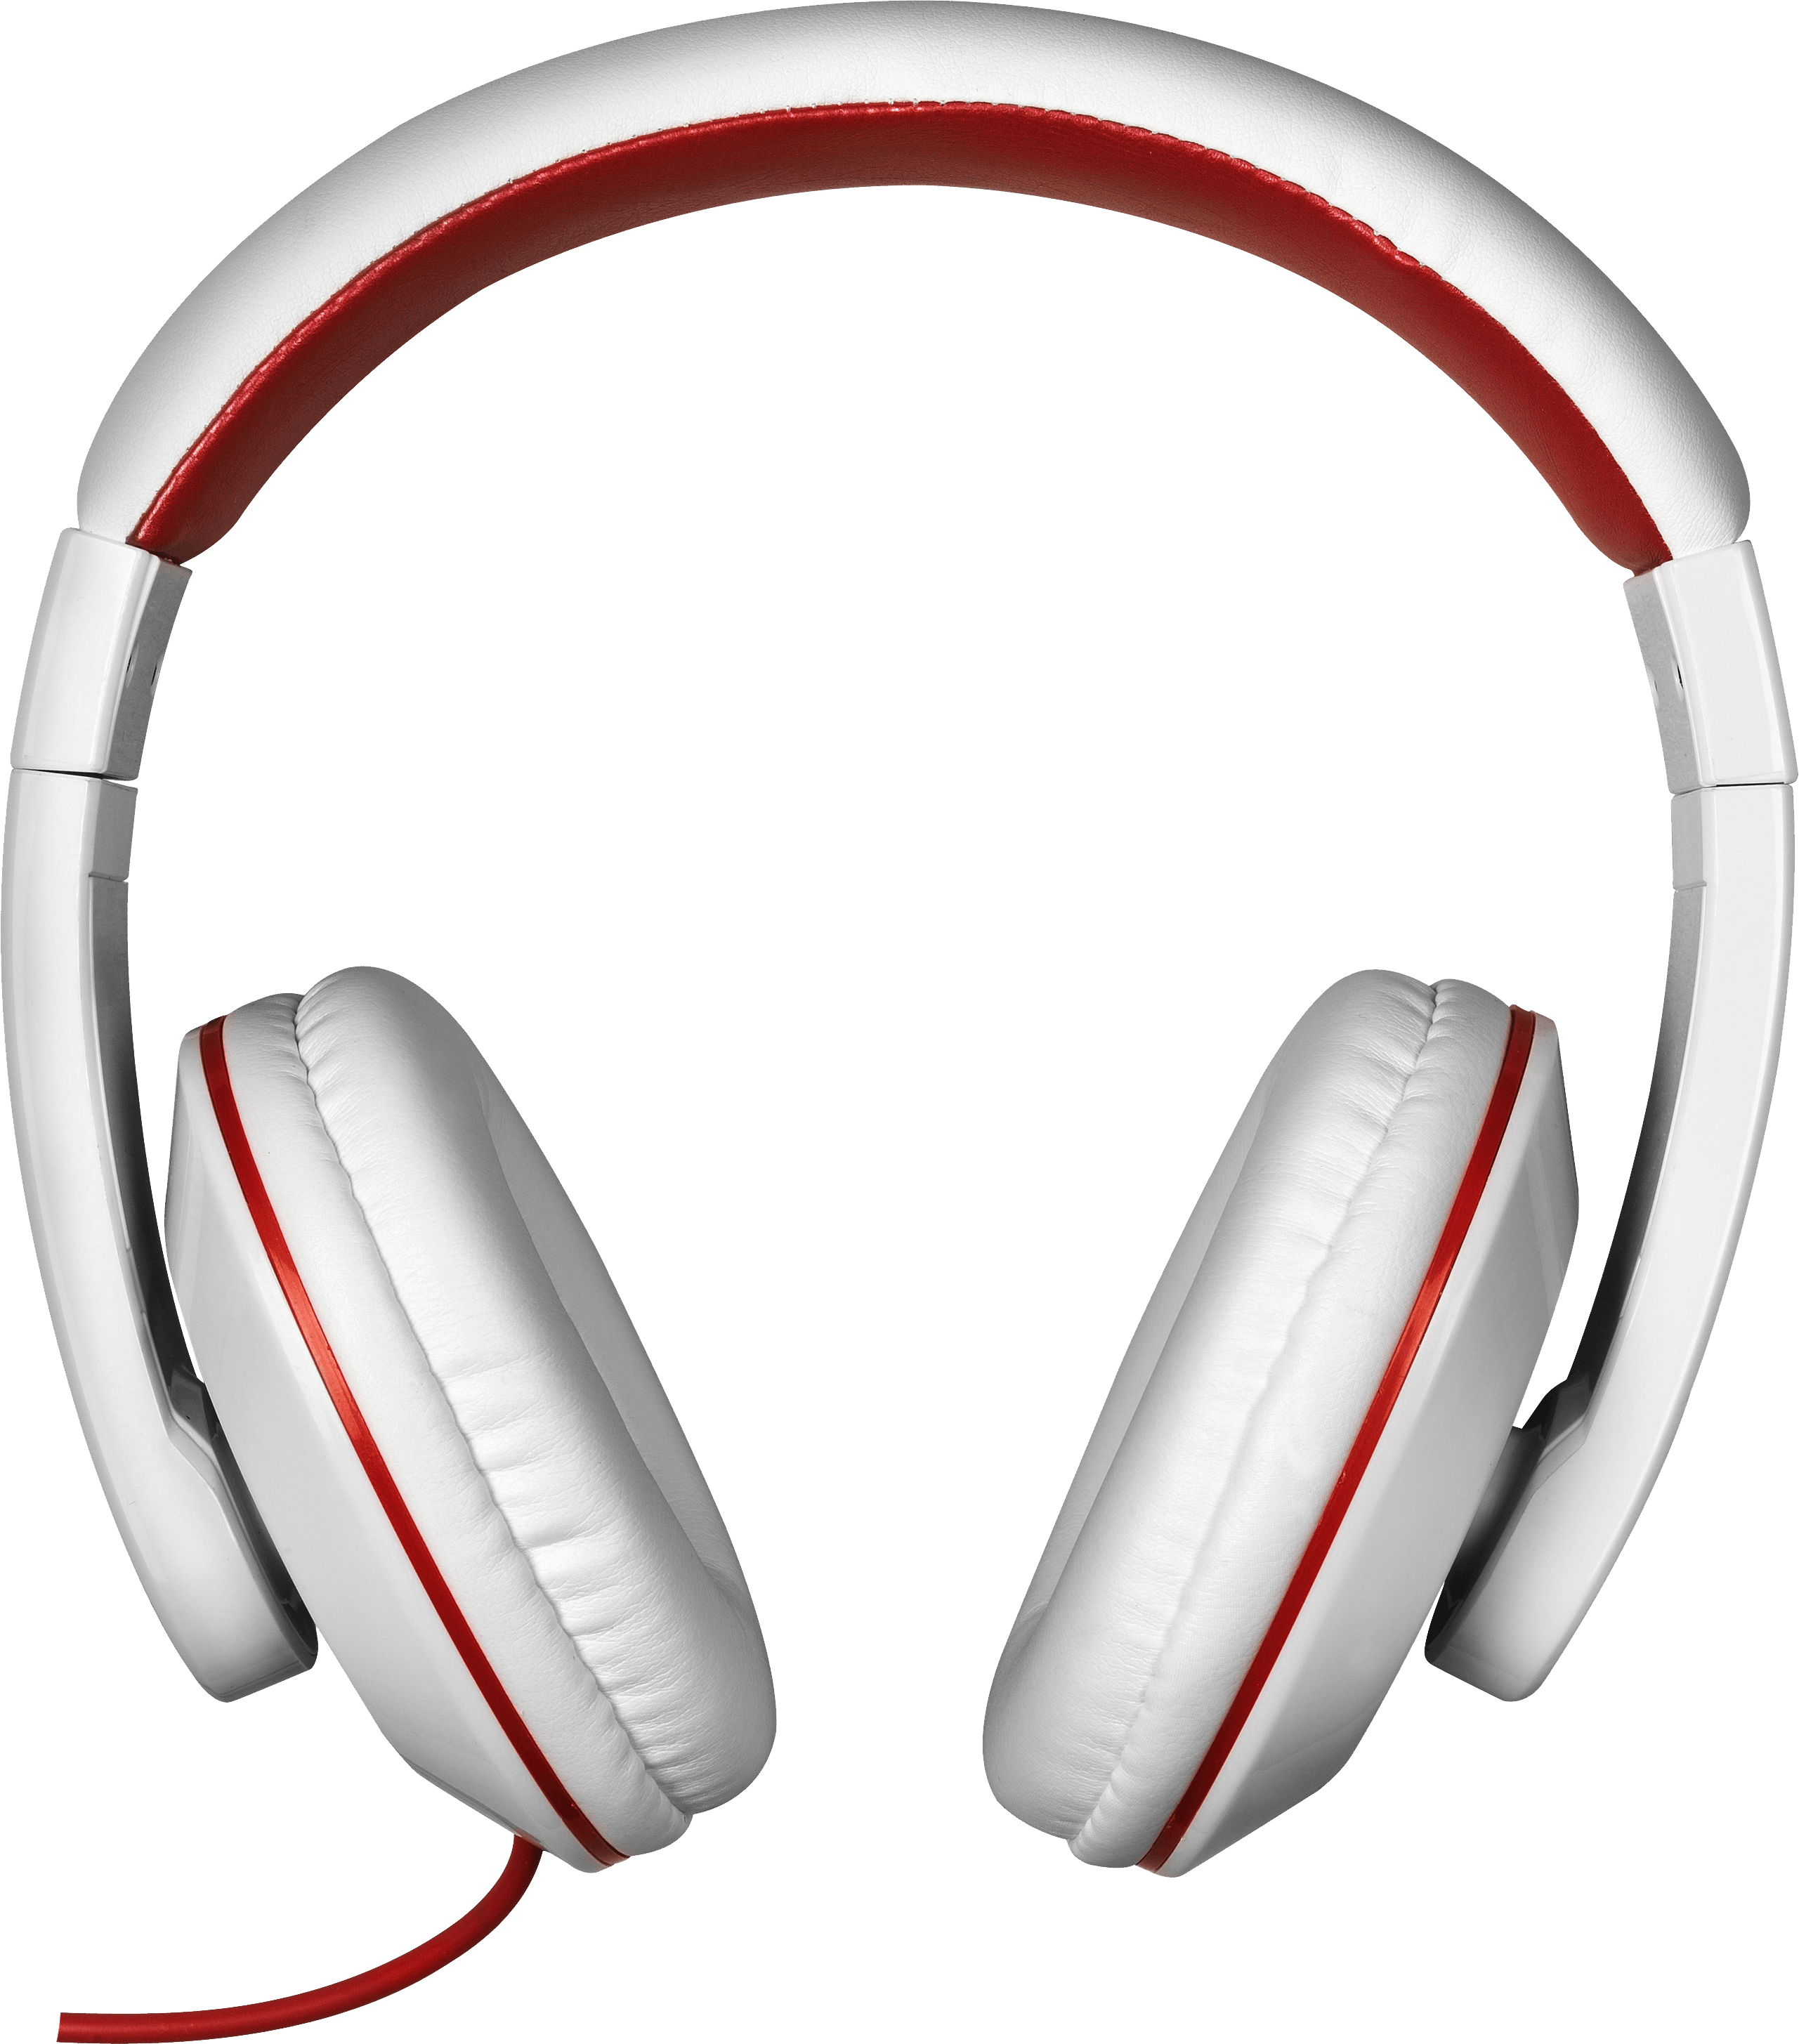 Headphones clipart png. Red white transparent stickpng